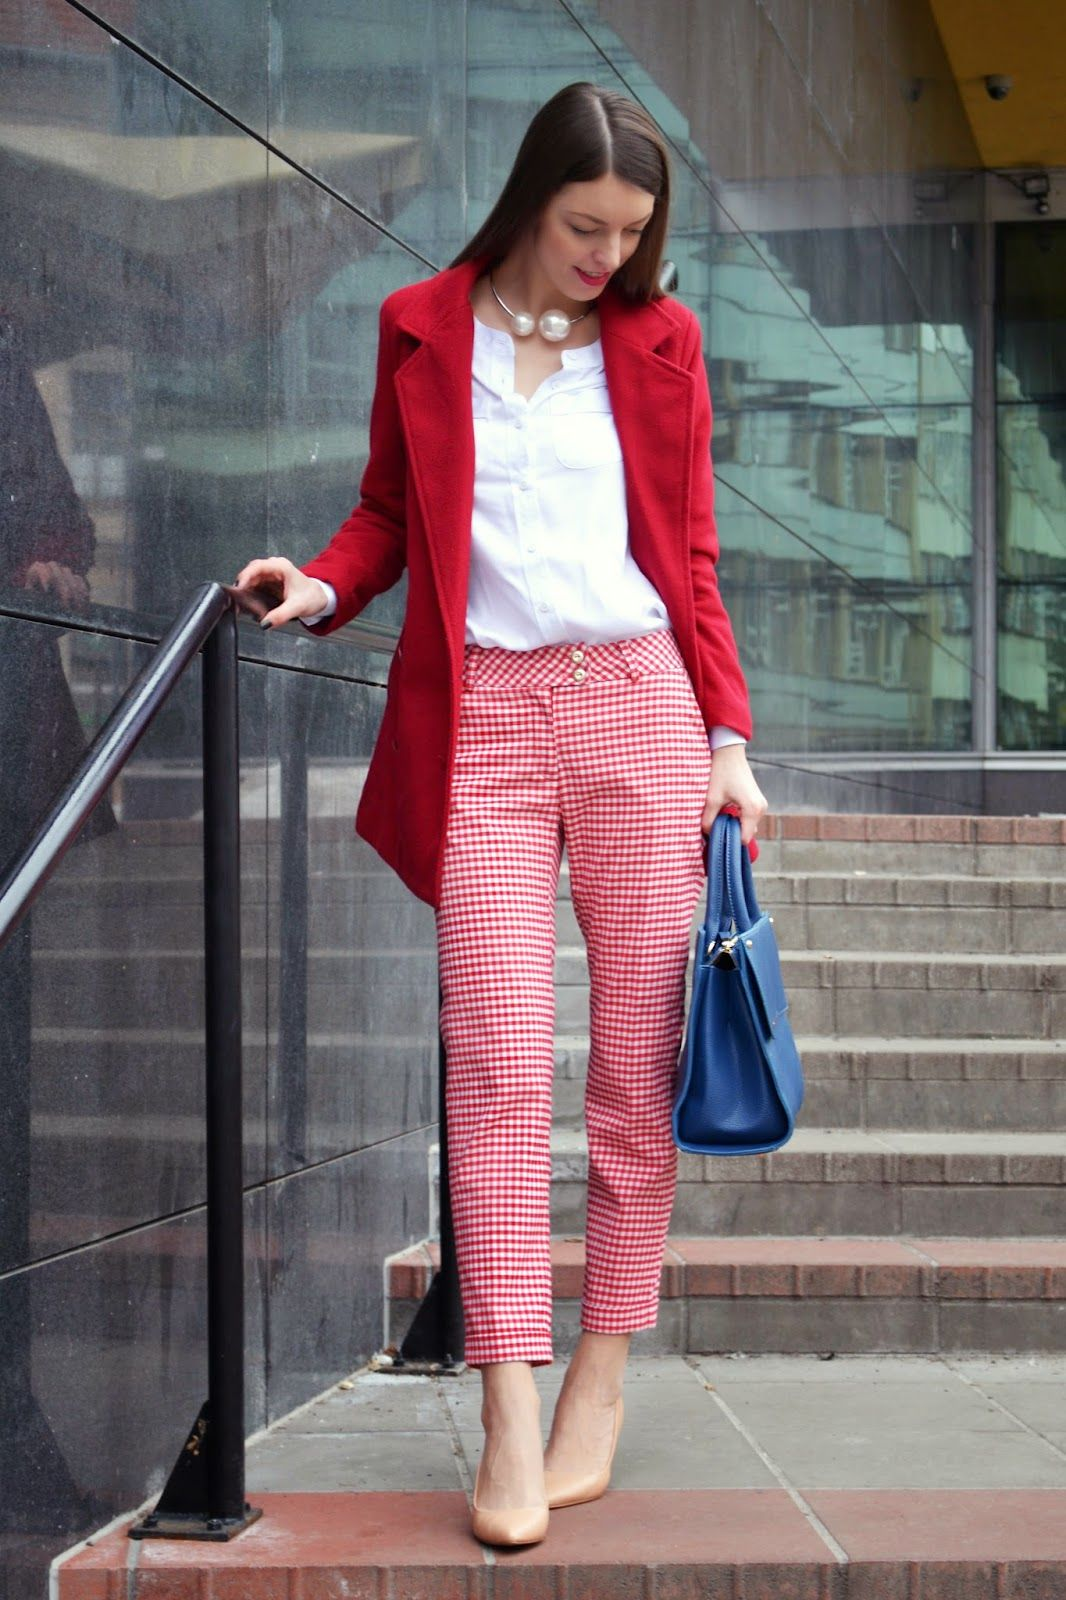 76b1b3f70a1 Mademoiselle IVA  red gingham trousers and navy blue handbag